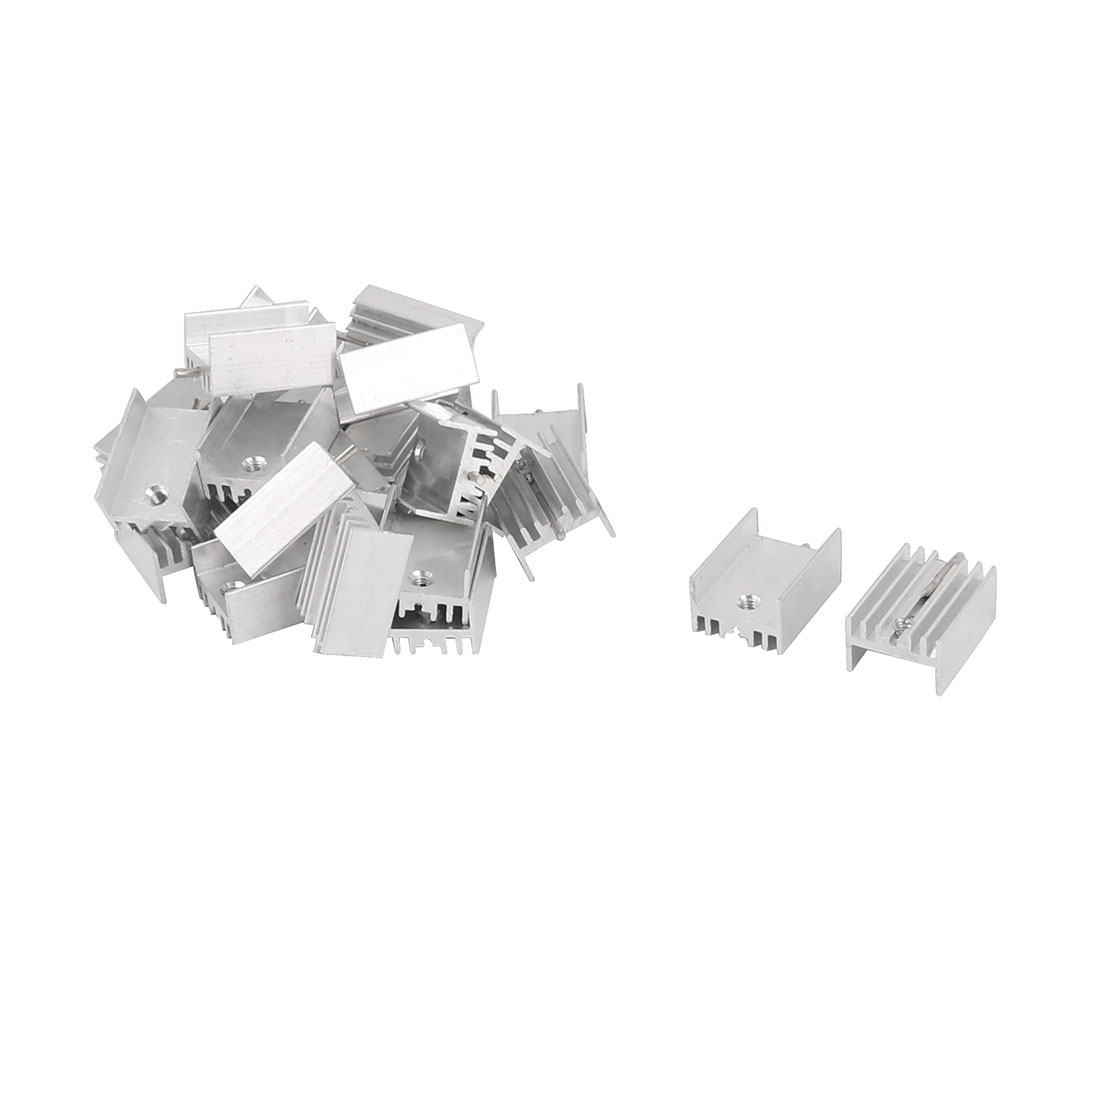 20mm x 15mm x 10mm Silver Tone Aluminium Power Amplifier Heat Sink Radiator Heatsink 25pcs